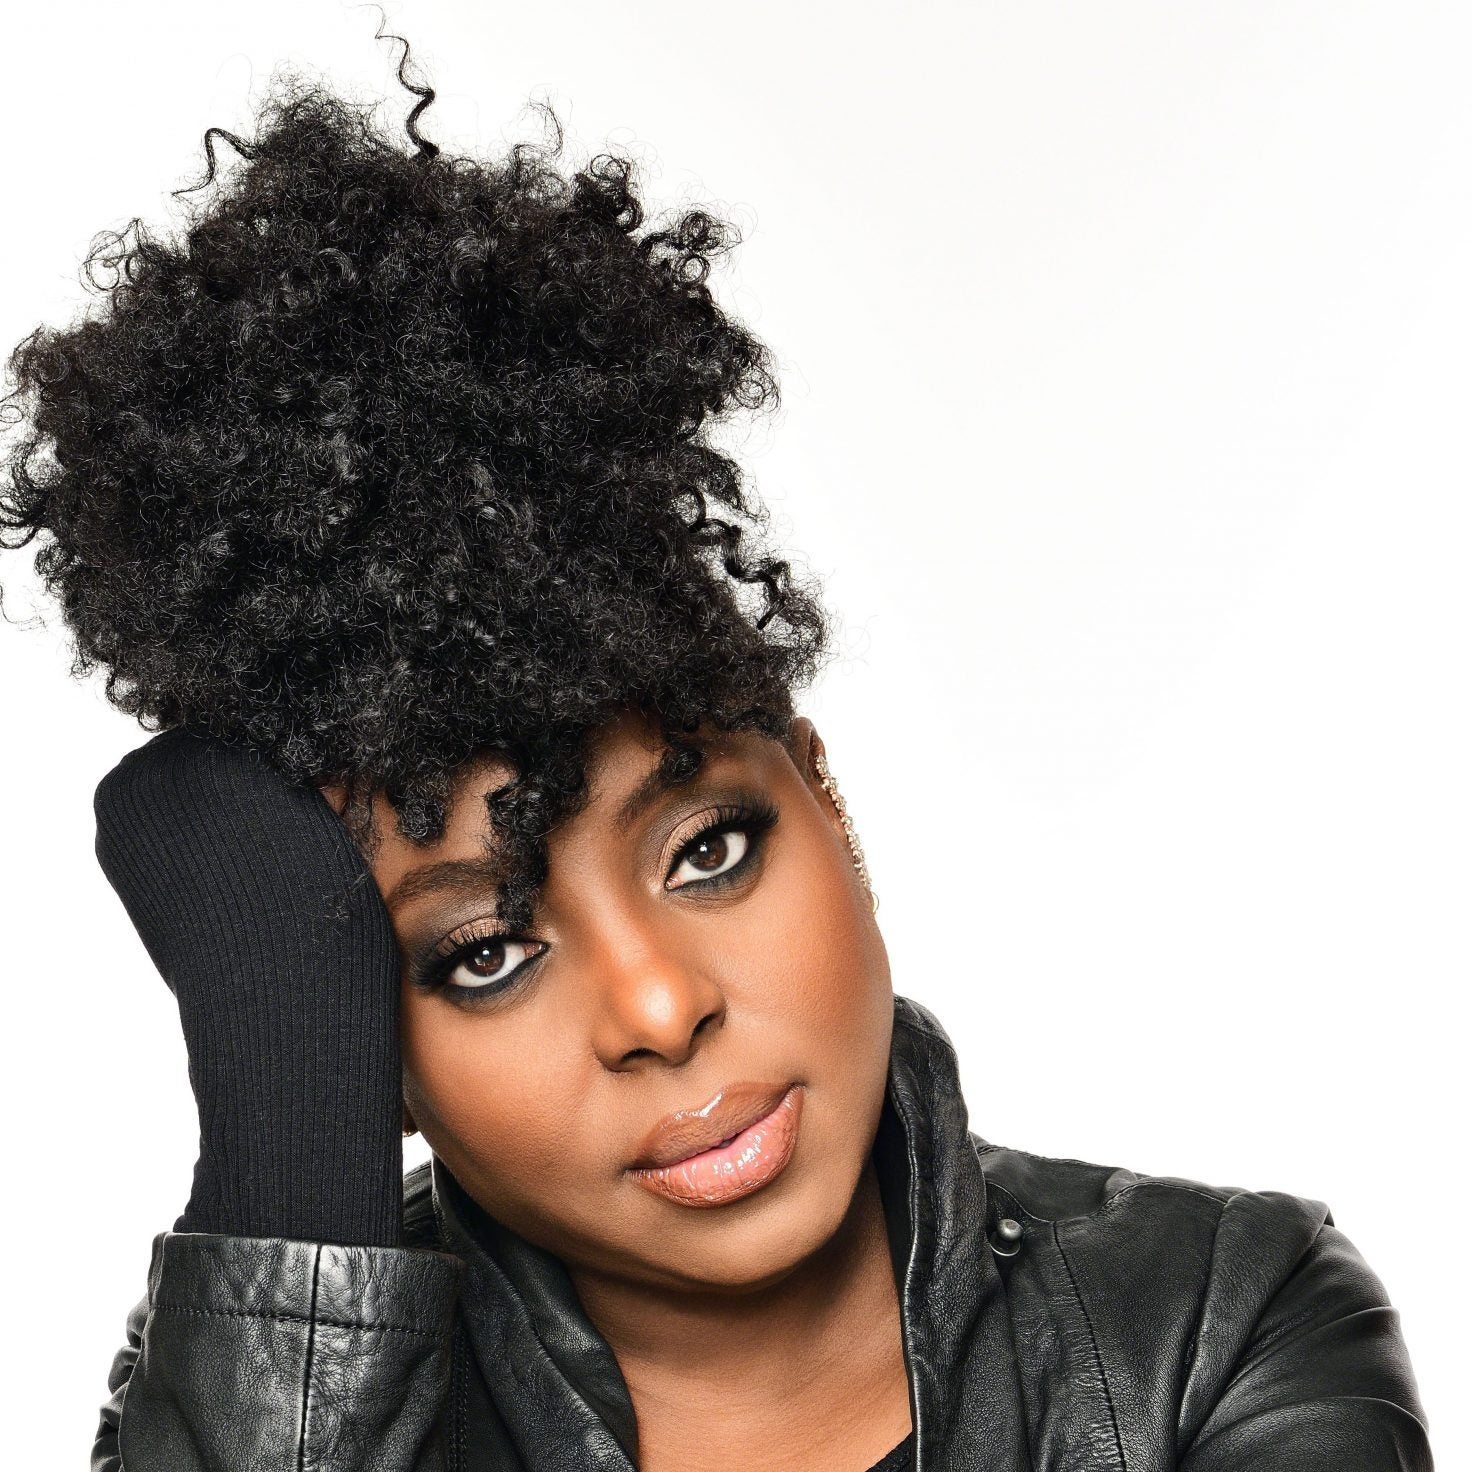 Ledisi Drops Video for New Single 'Anything For You'